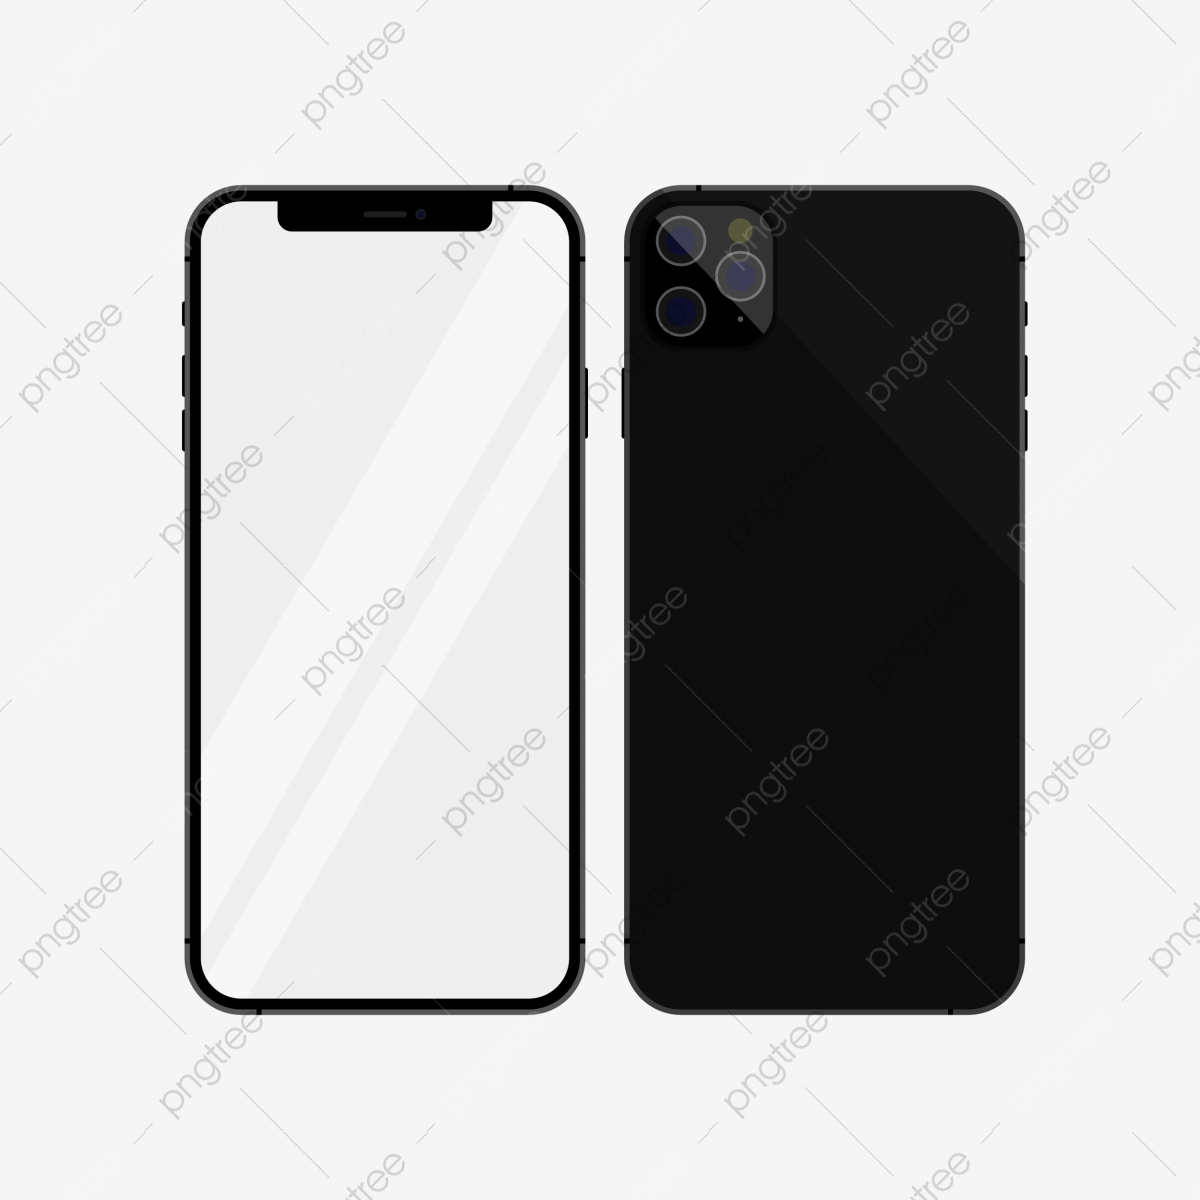 Iphone 11 Png Images Vector And Psd Files Free Download On Pngtree